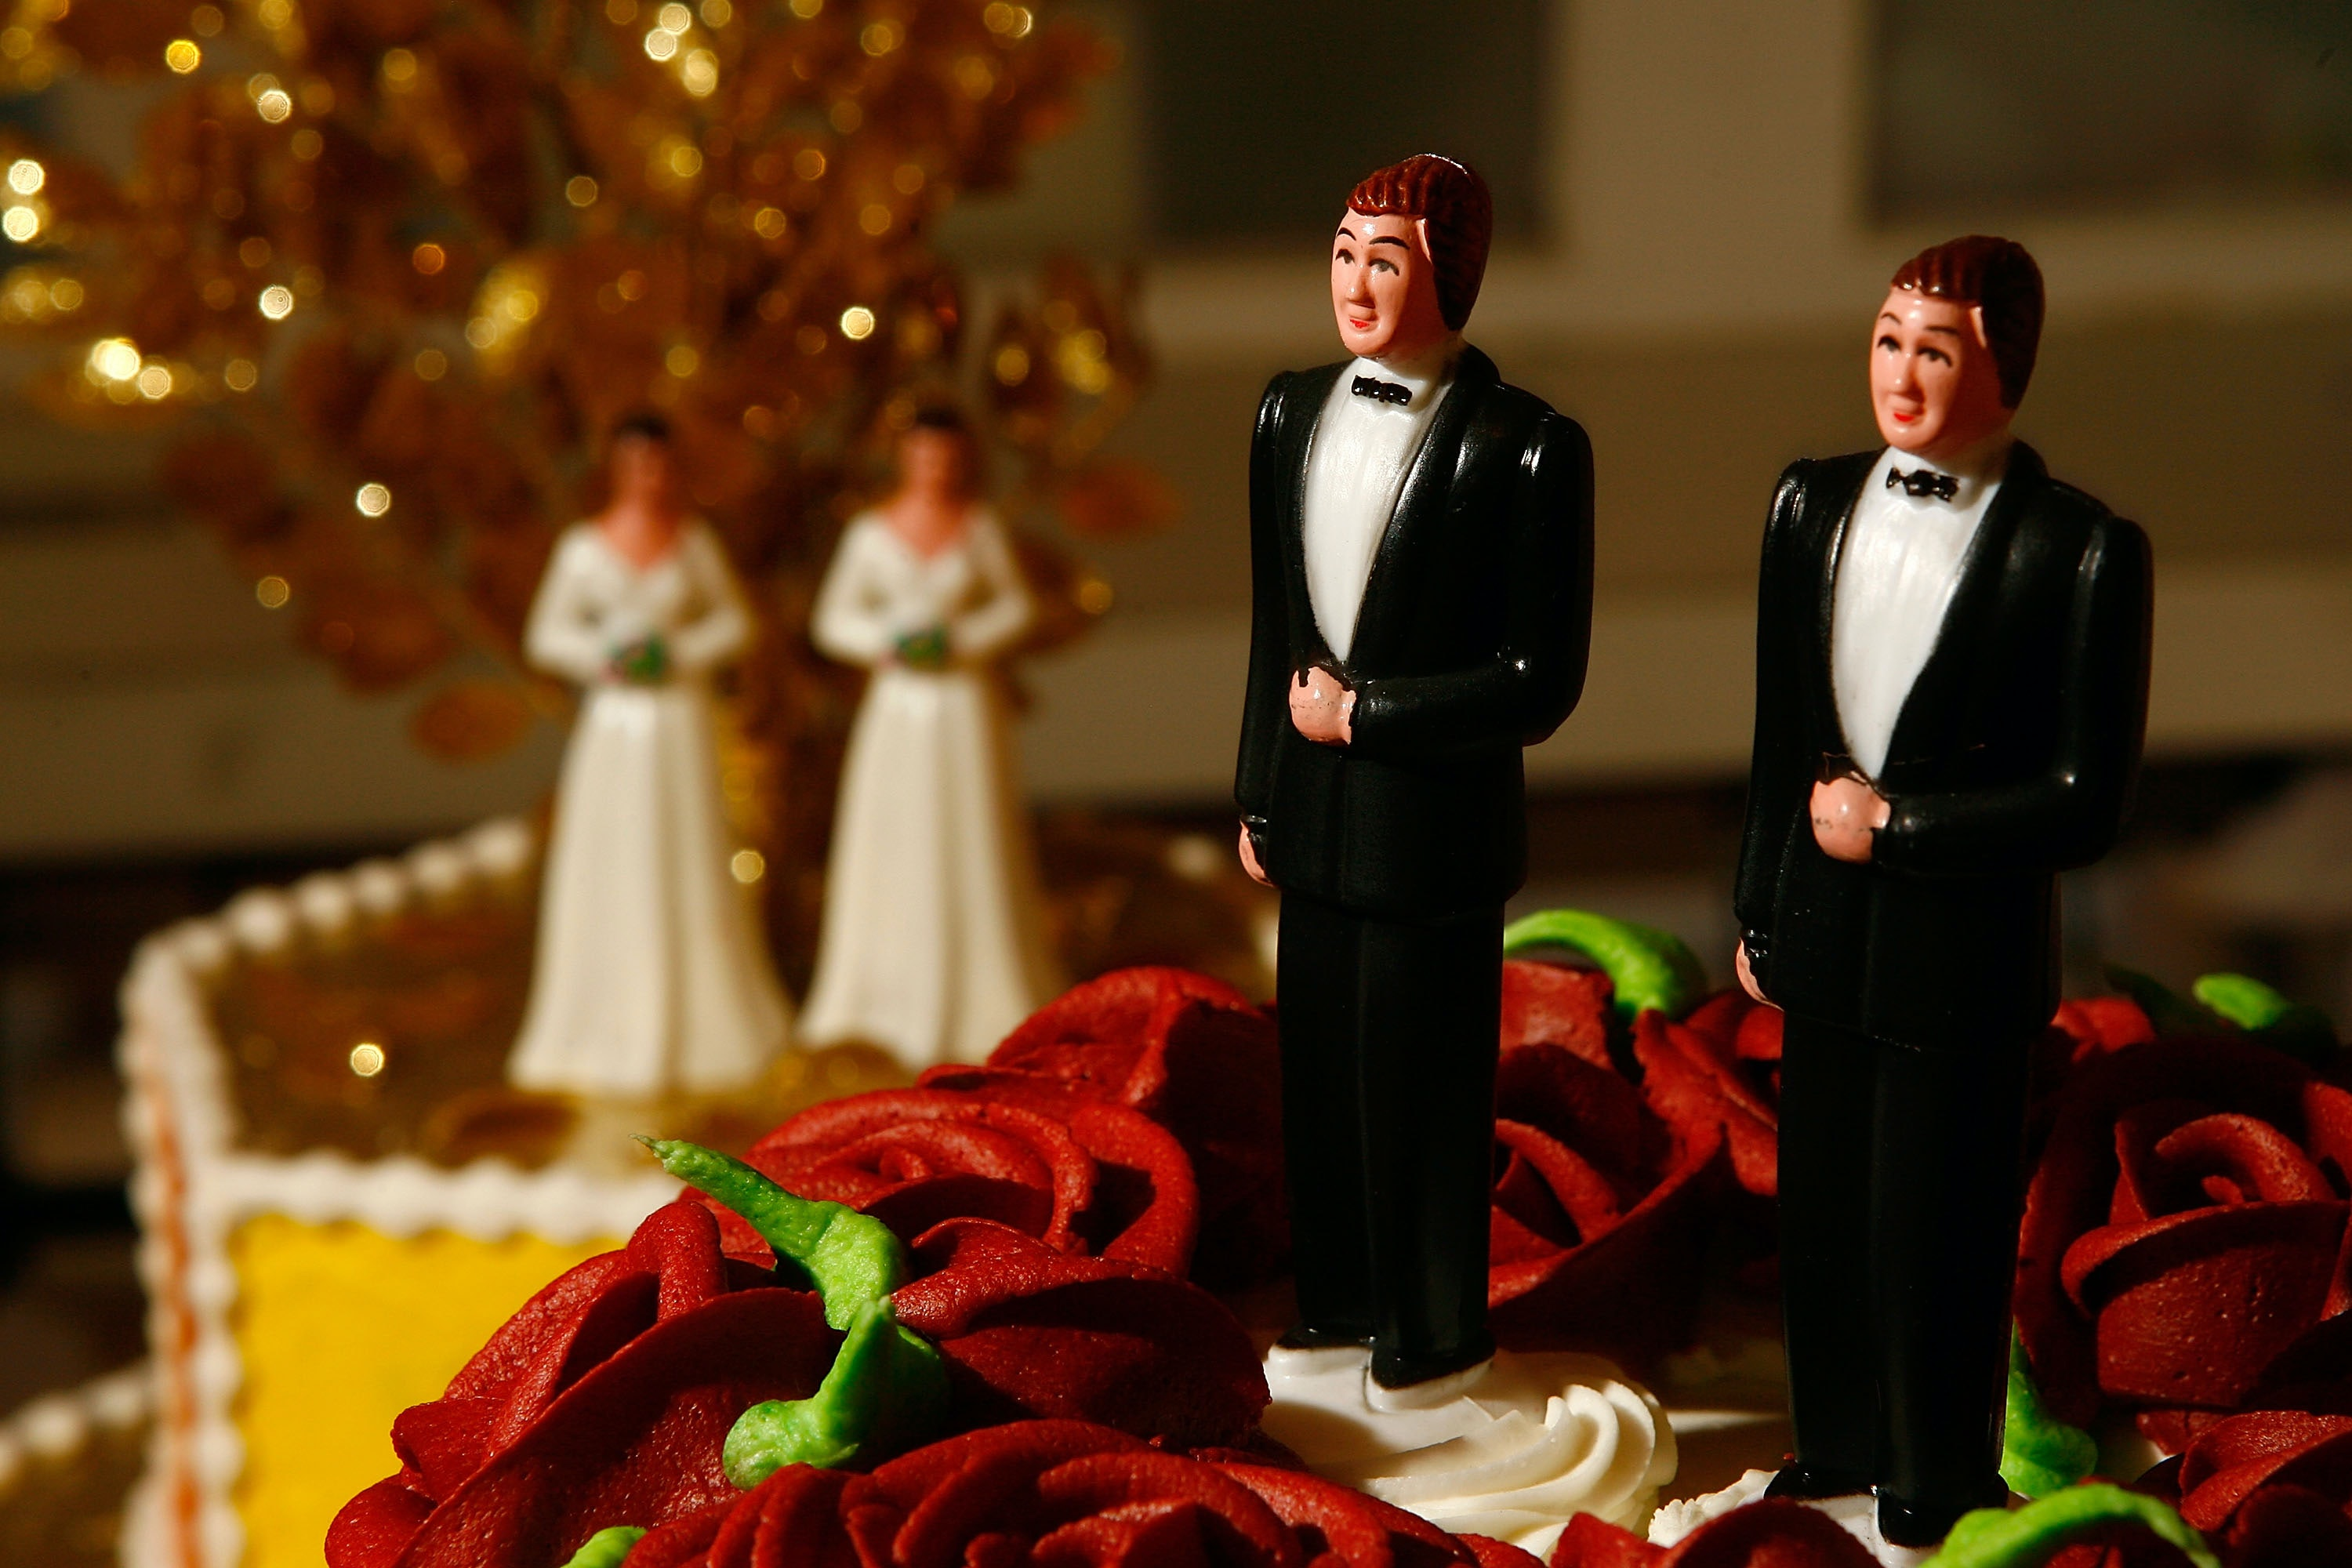 Marriage is traditionally a heterosexual institution